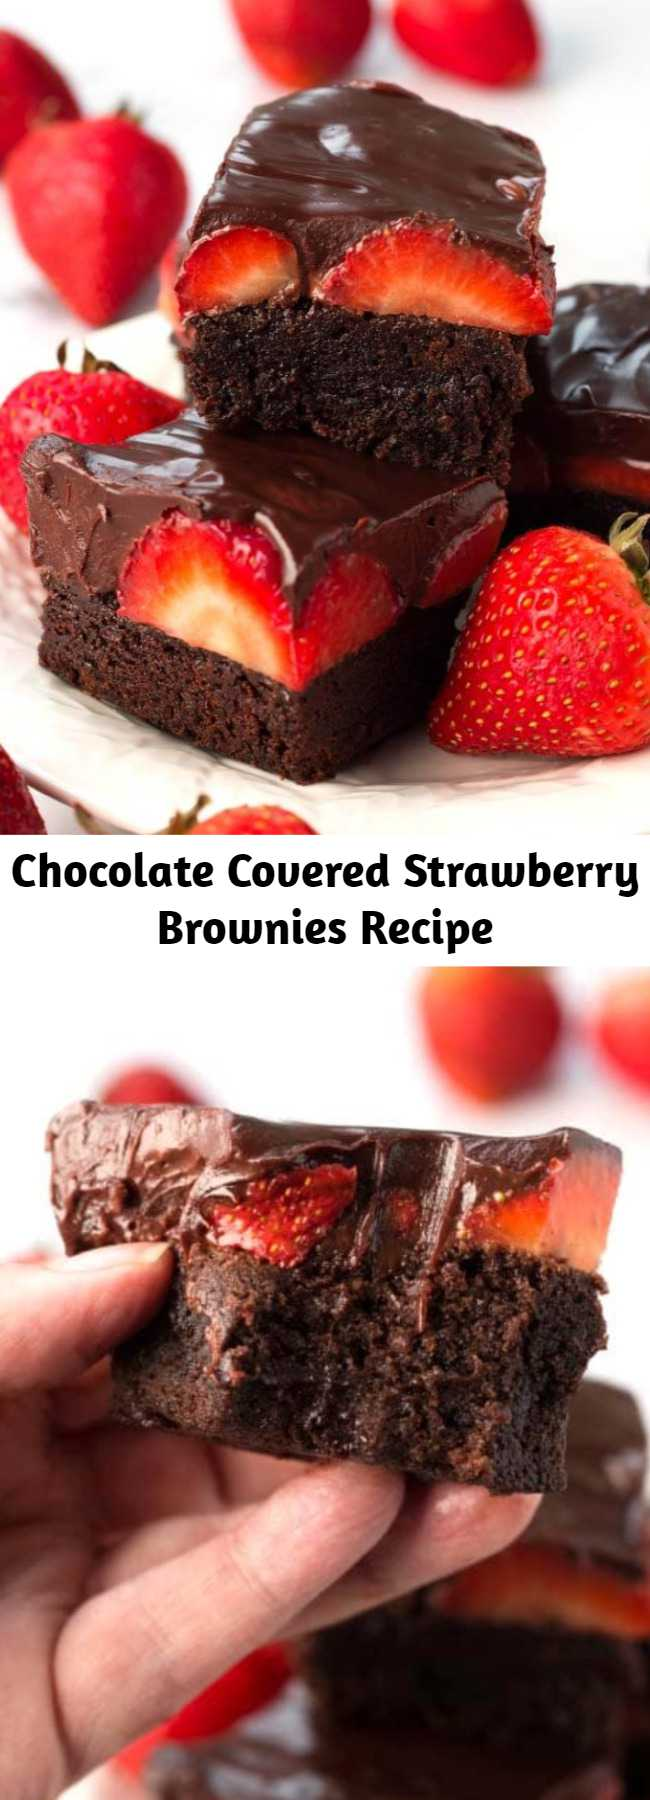 Chocolate Covered Strawberry Brownies Recipe - Chocolate Covered Strawberry Brownies are a delicious, chocolatey dessert recipe. If you like rich, chocolate brownies, then you will love these chocolate ganache strawberry covered brownies! #brownies #chocolate #chocolatecoveredstrawberries